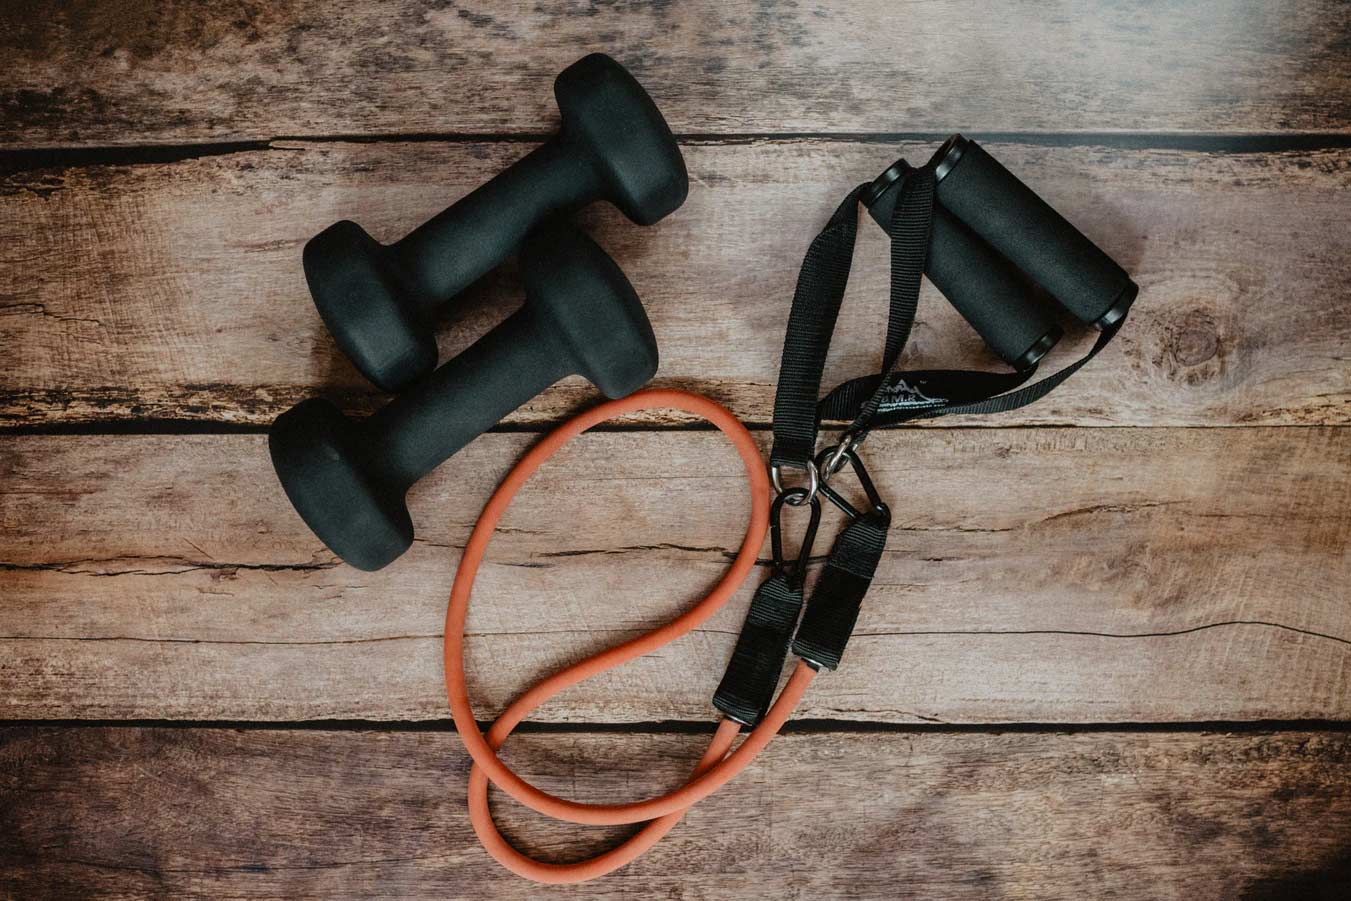 Resistance bands and weights